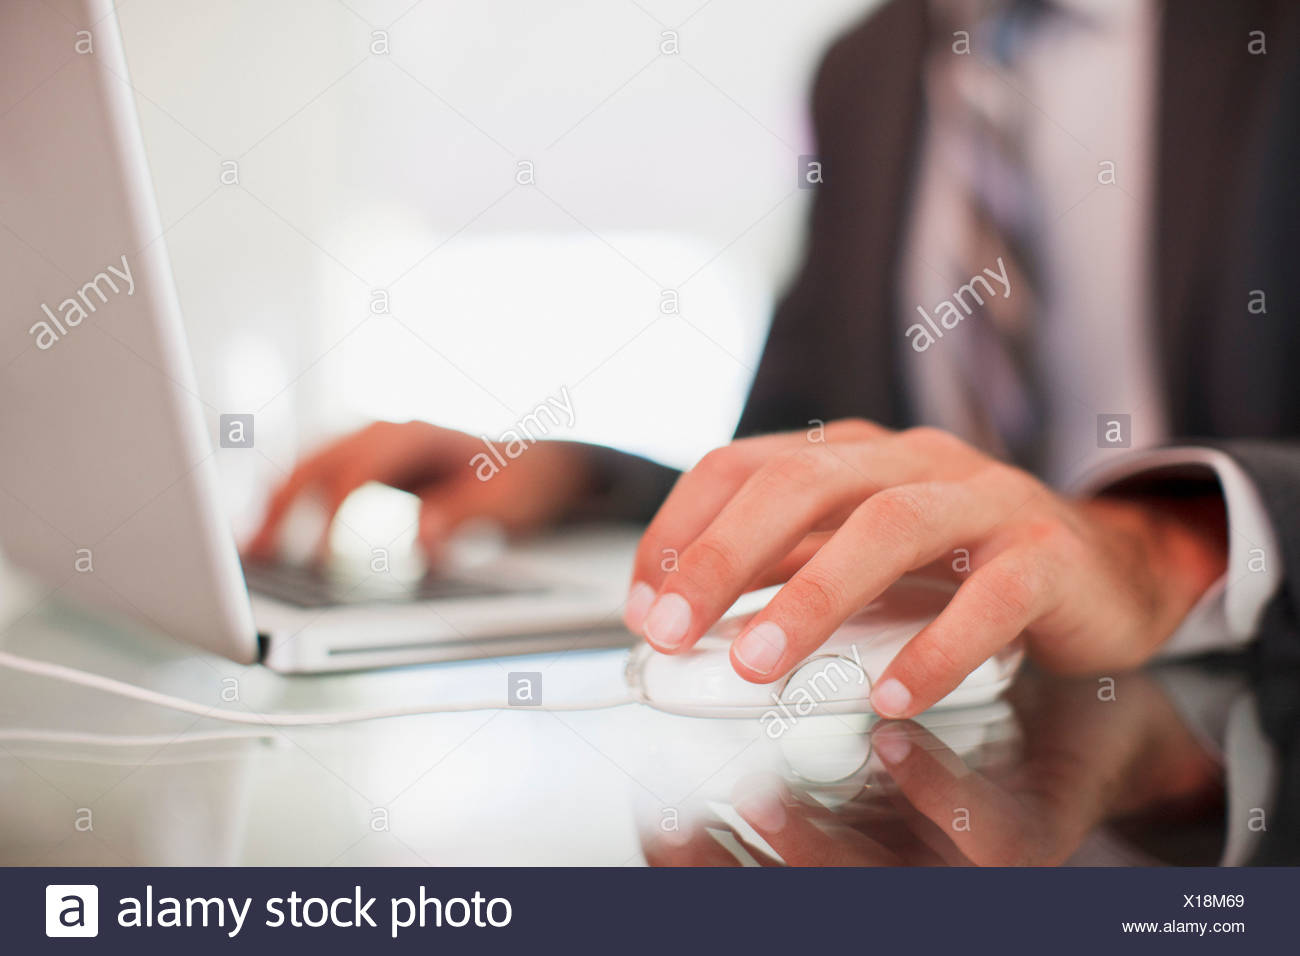 Businessman using computer mouse and typing on laptop - Stock Image